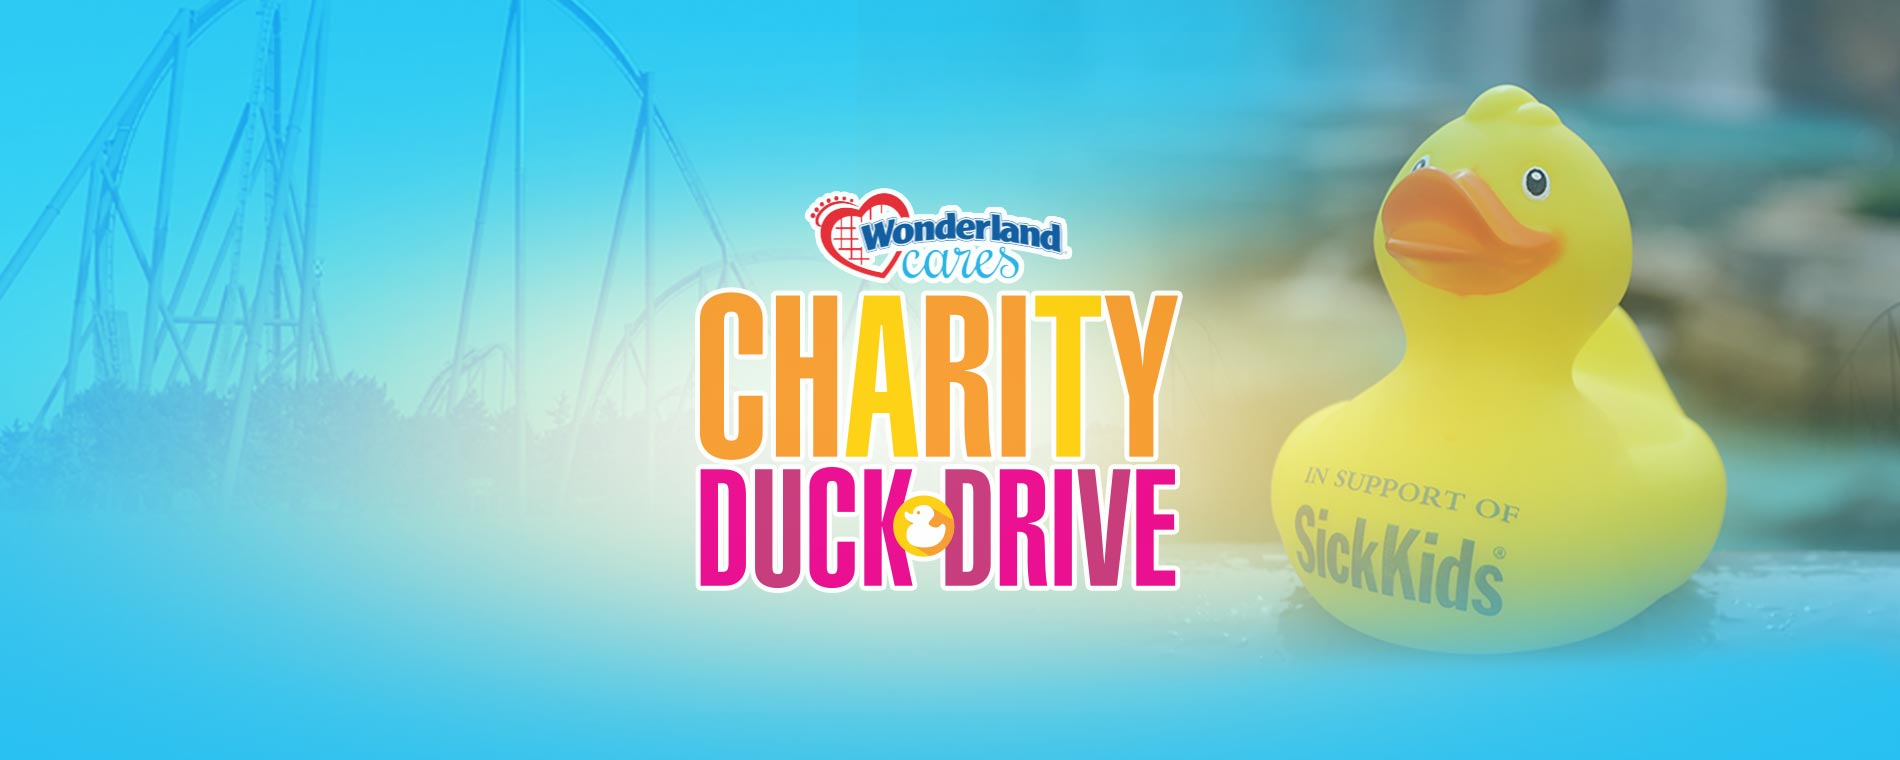 Charity Duck Drive at Canada's Wonderland